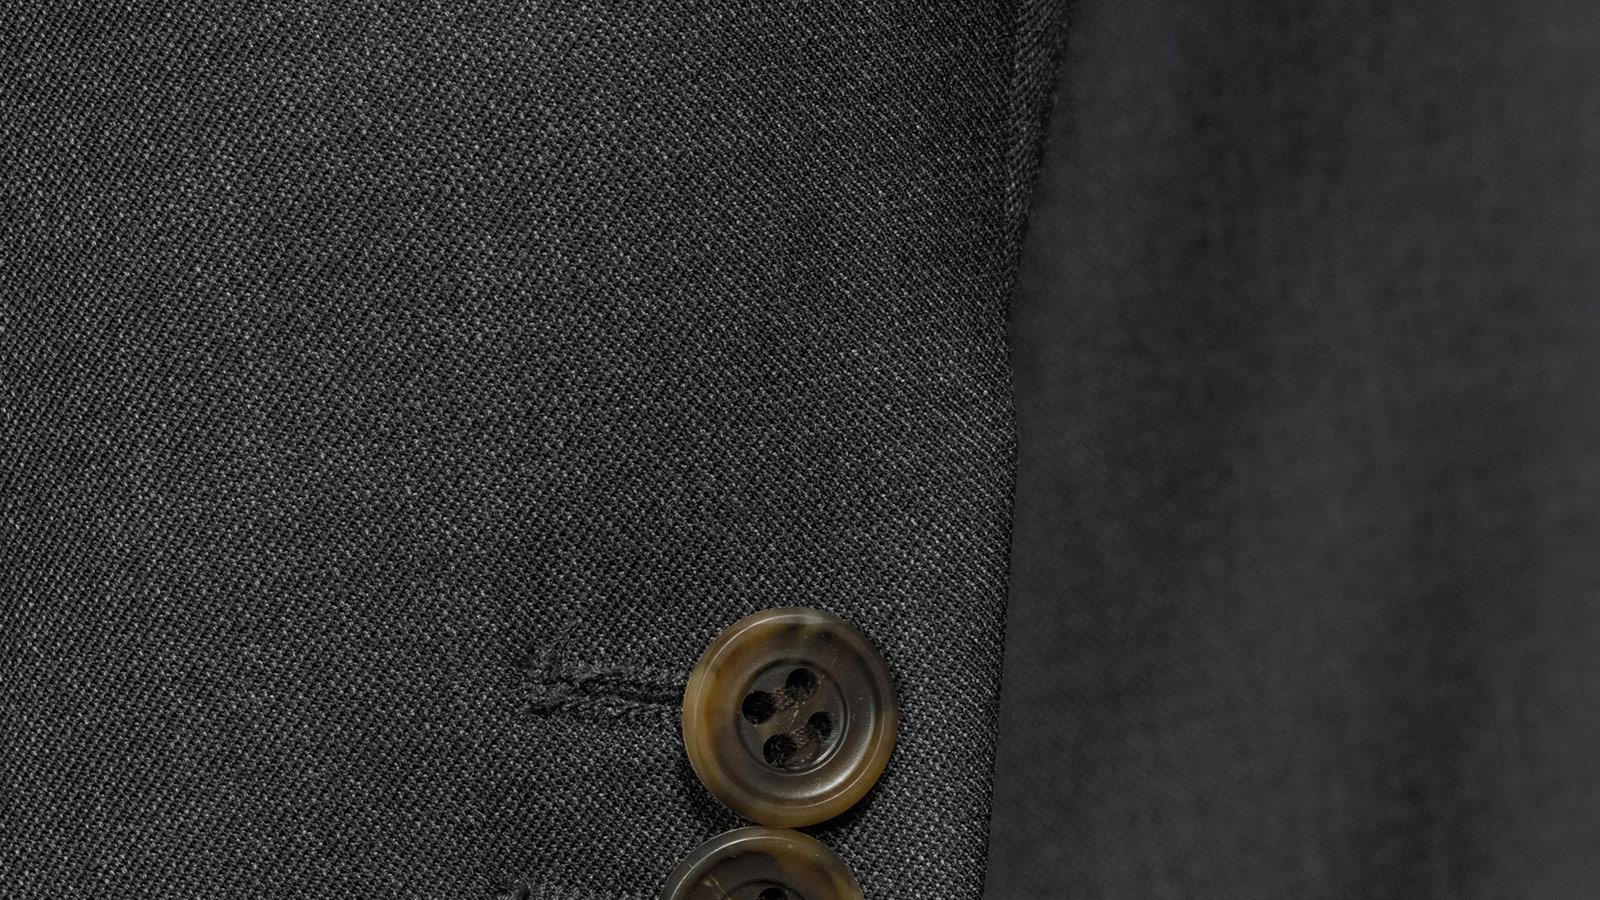 Vendetta Premium Charcoal Pick & Pick Suit - slider image 1